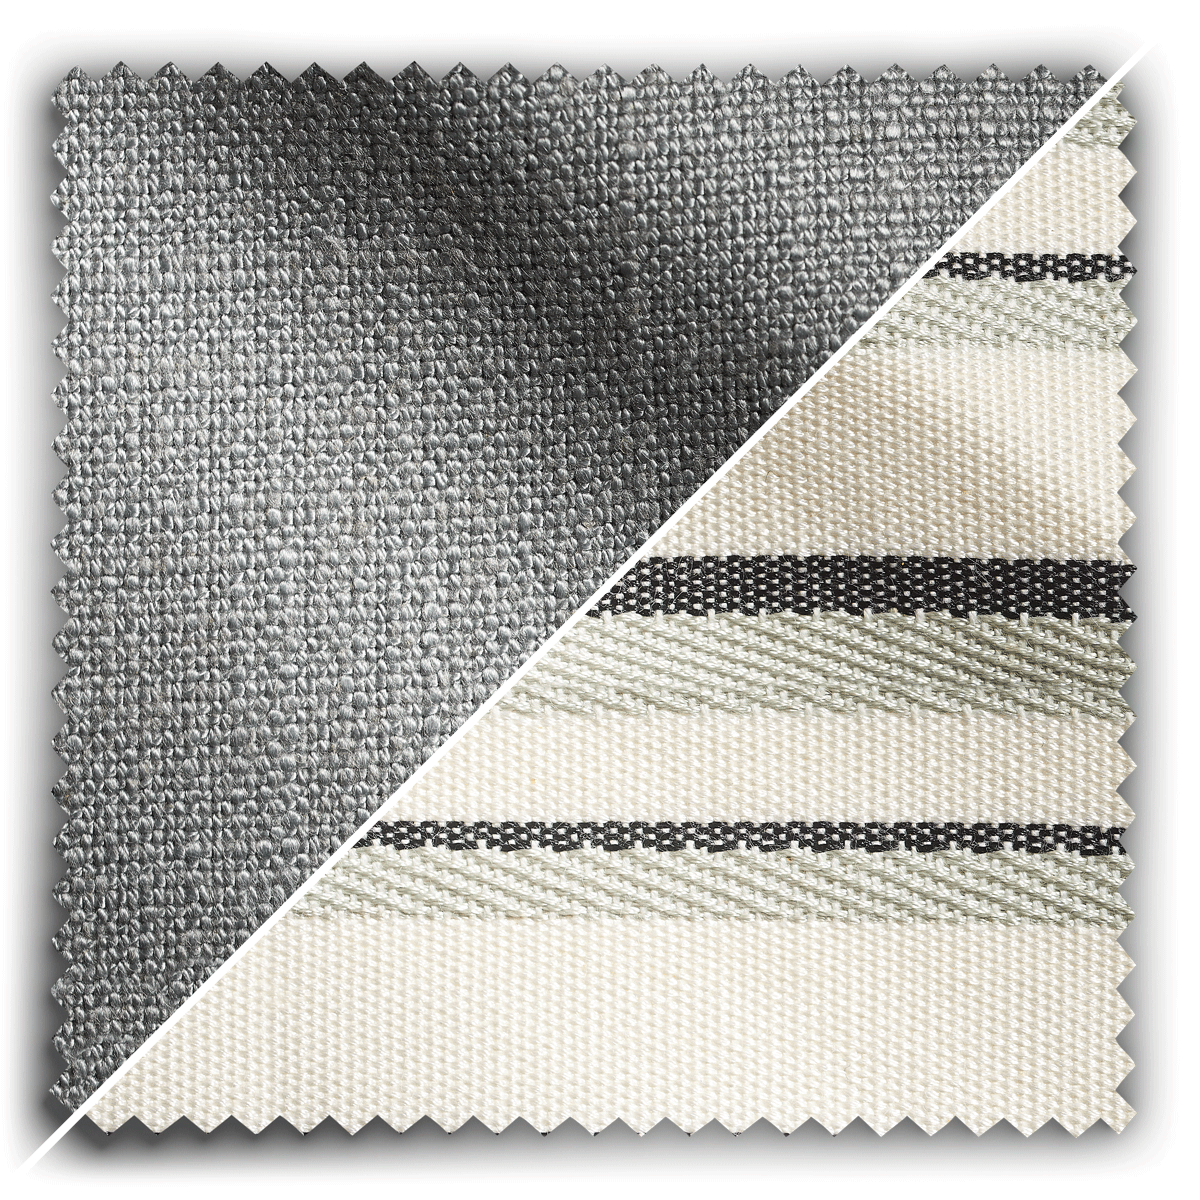 Image of Studio Stripes Silver Grey Linen fabric